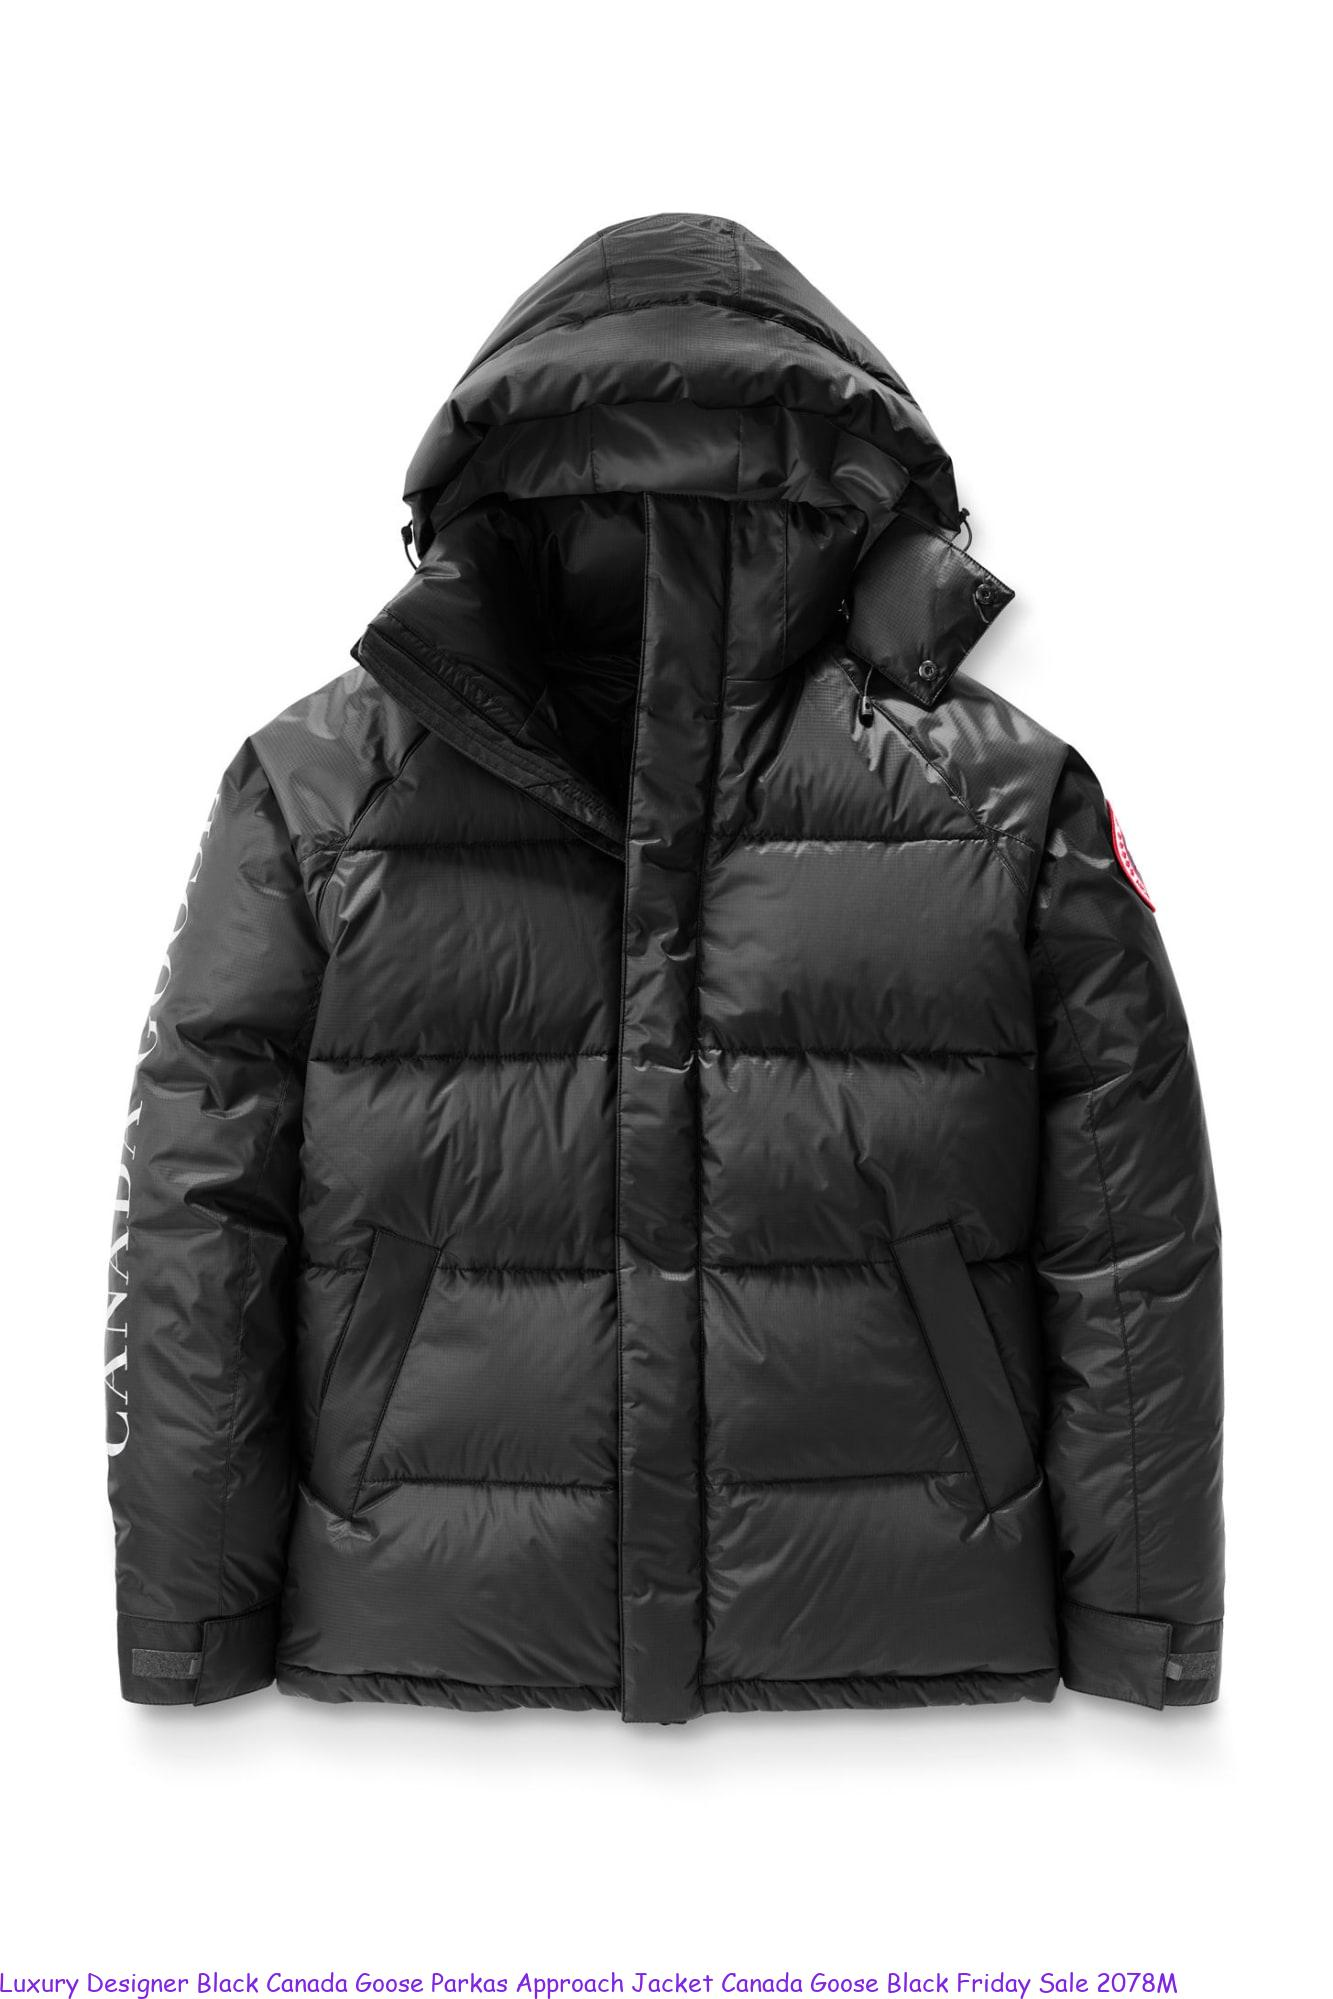 3a9329b38926 Luxury Designer Black Canada Goose Parkas Approach Jacket Canada Goose  Black Friday Sale 2078M – Cheap Canada Goose Outlet Sale